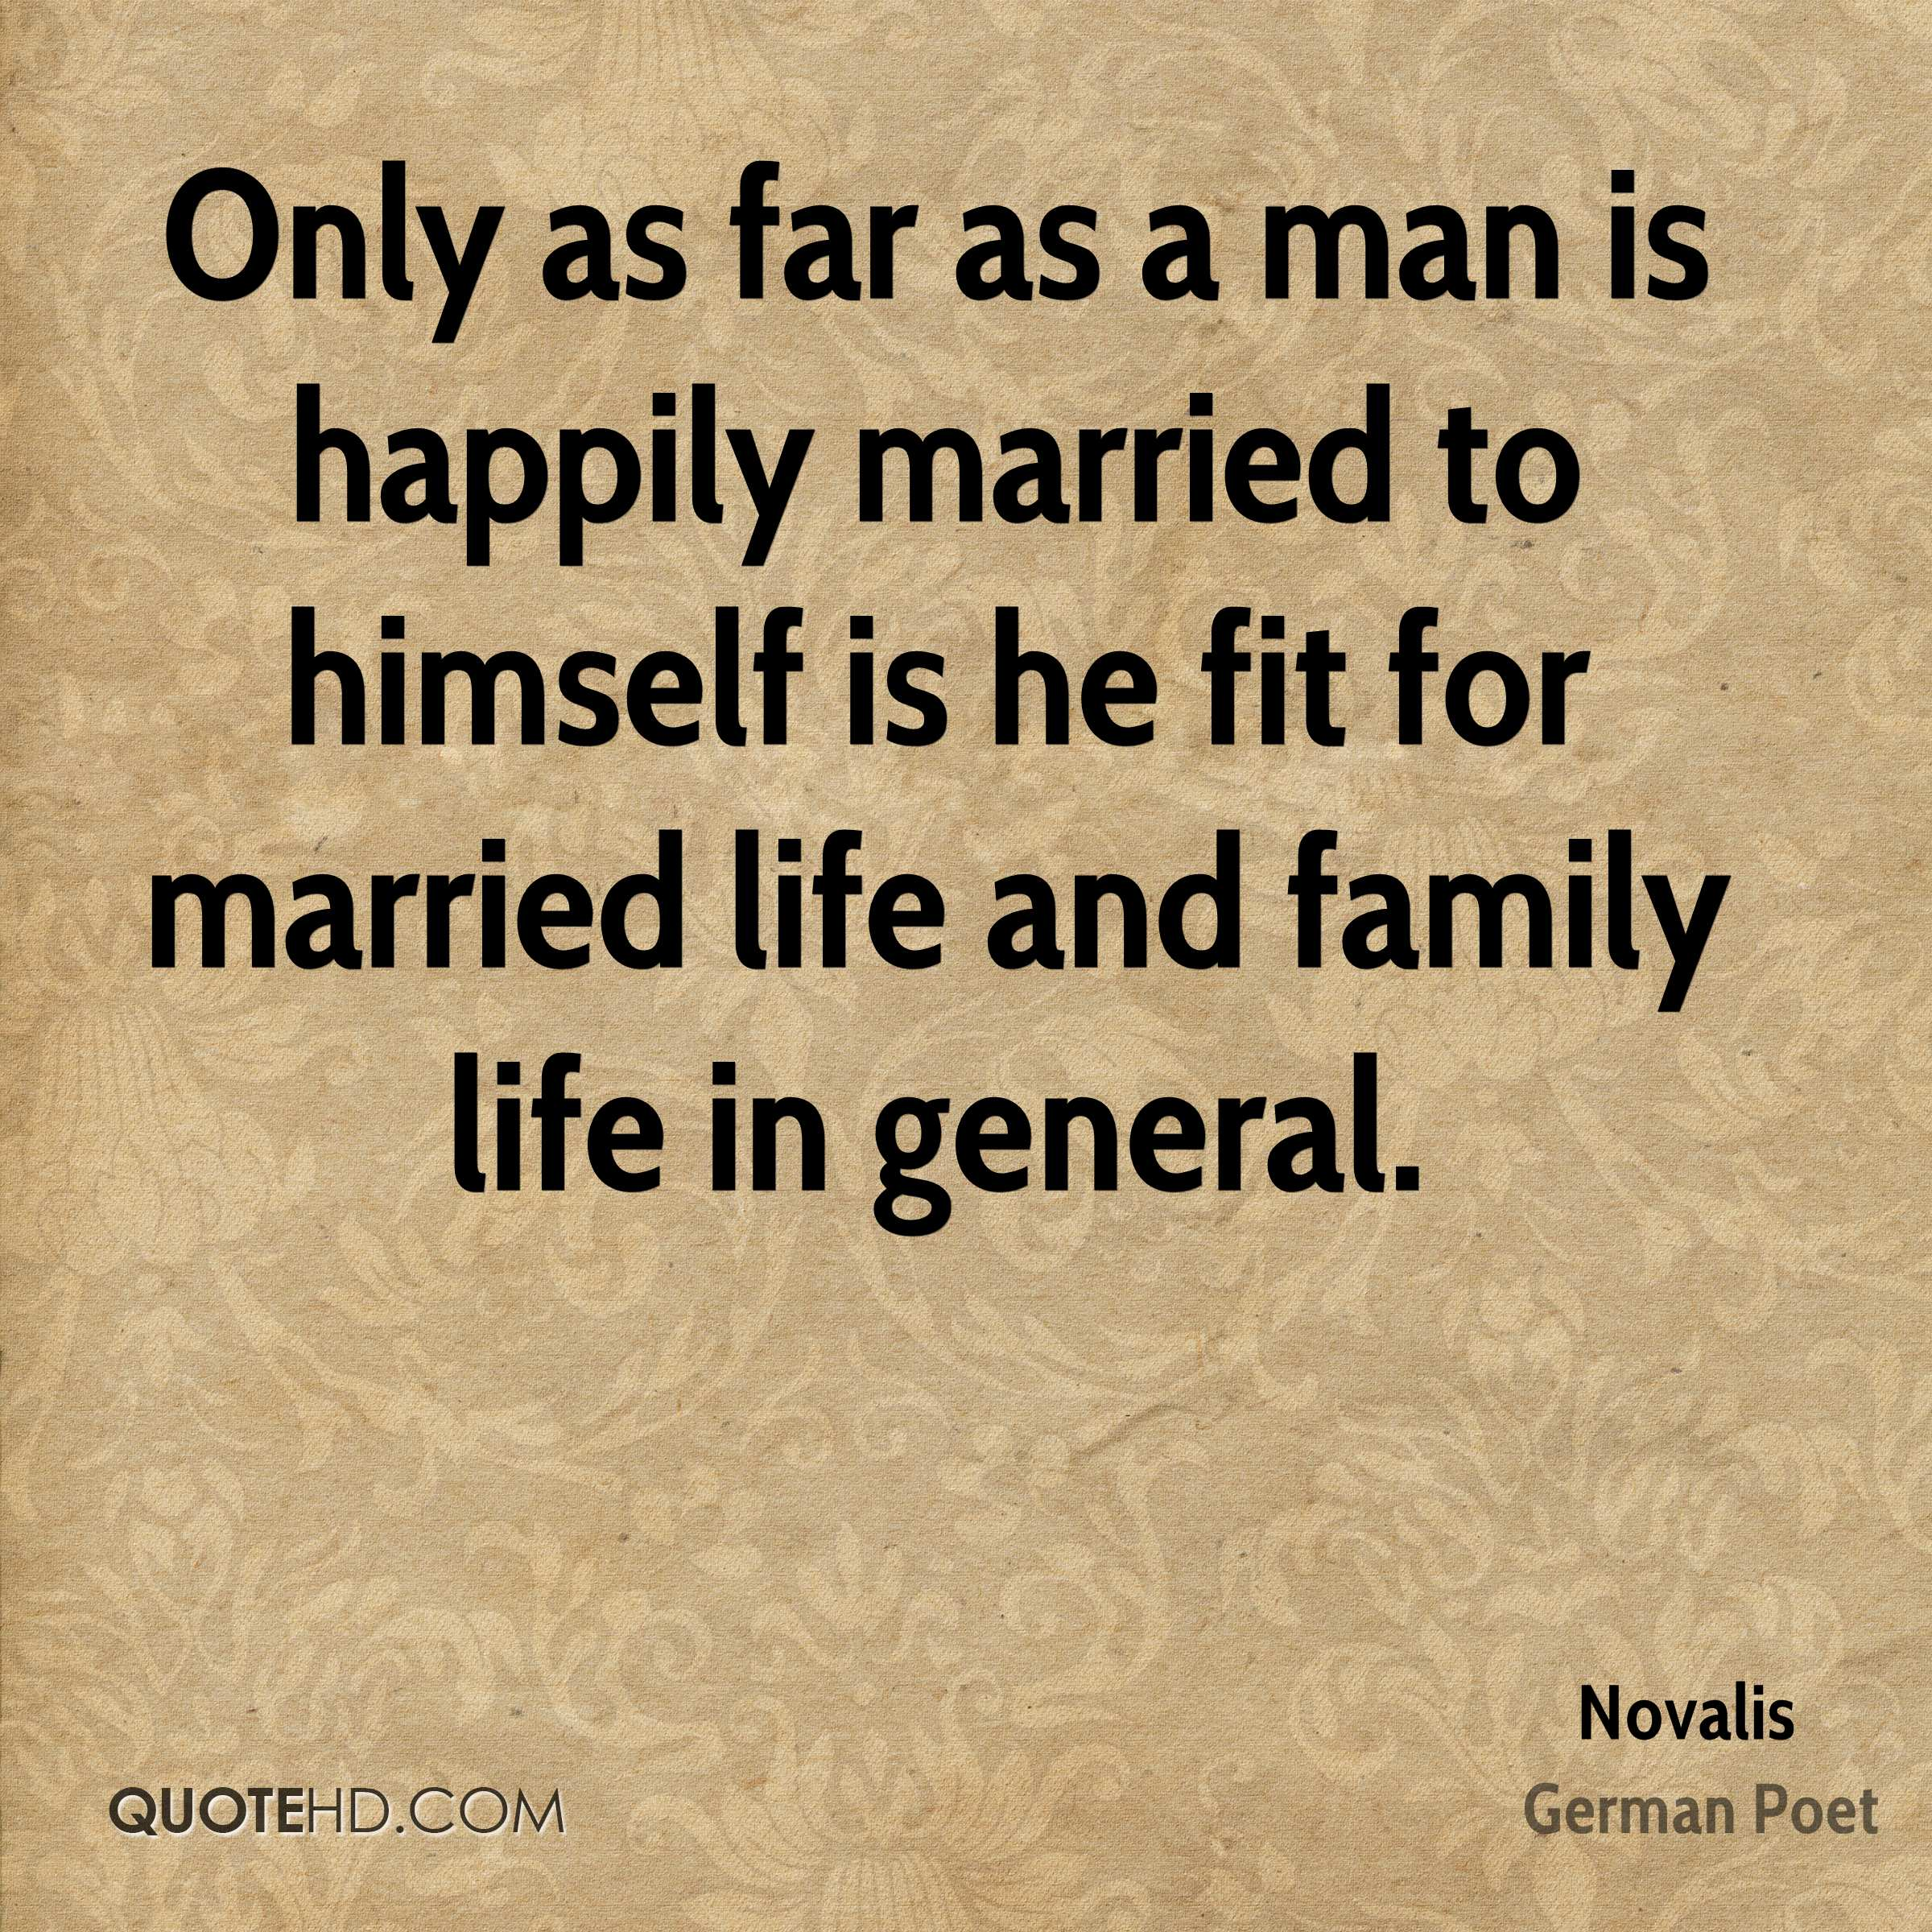 Only as far as a man is happily married to himself is he fit for married life and family life in general.